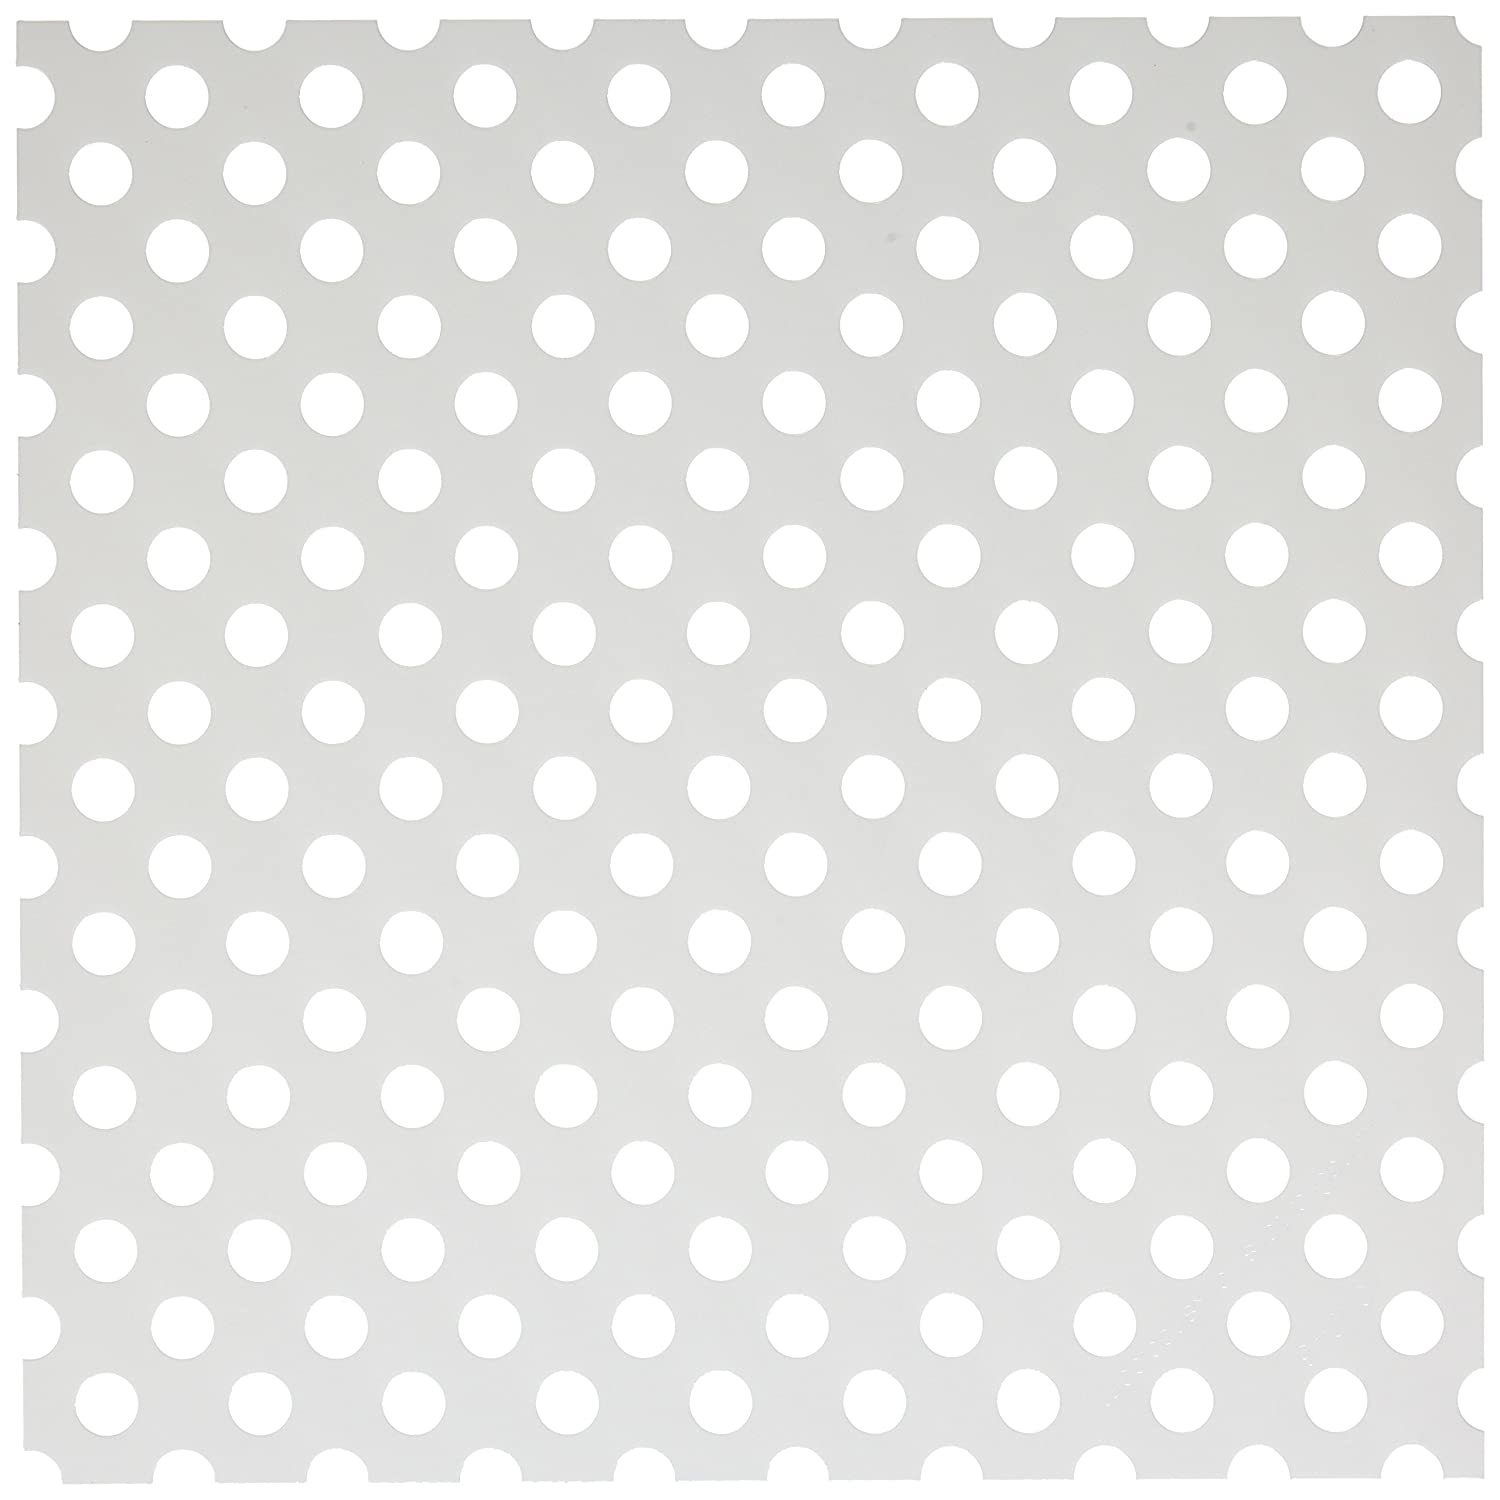 CRAFTERS WORKSHOP Template 12X12, Swiss Dot Notions - In Network 122714